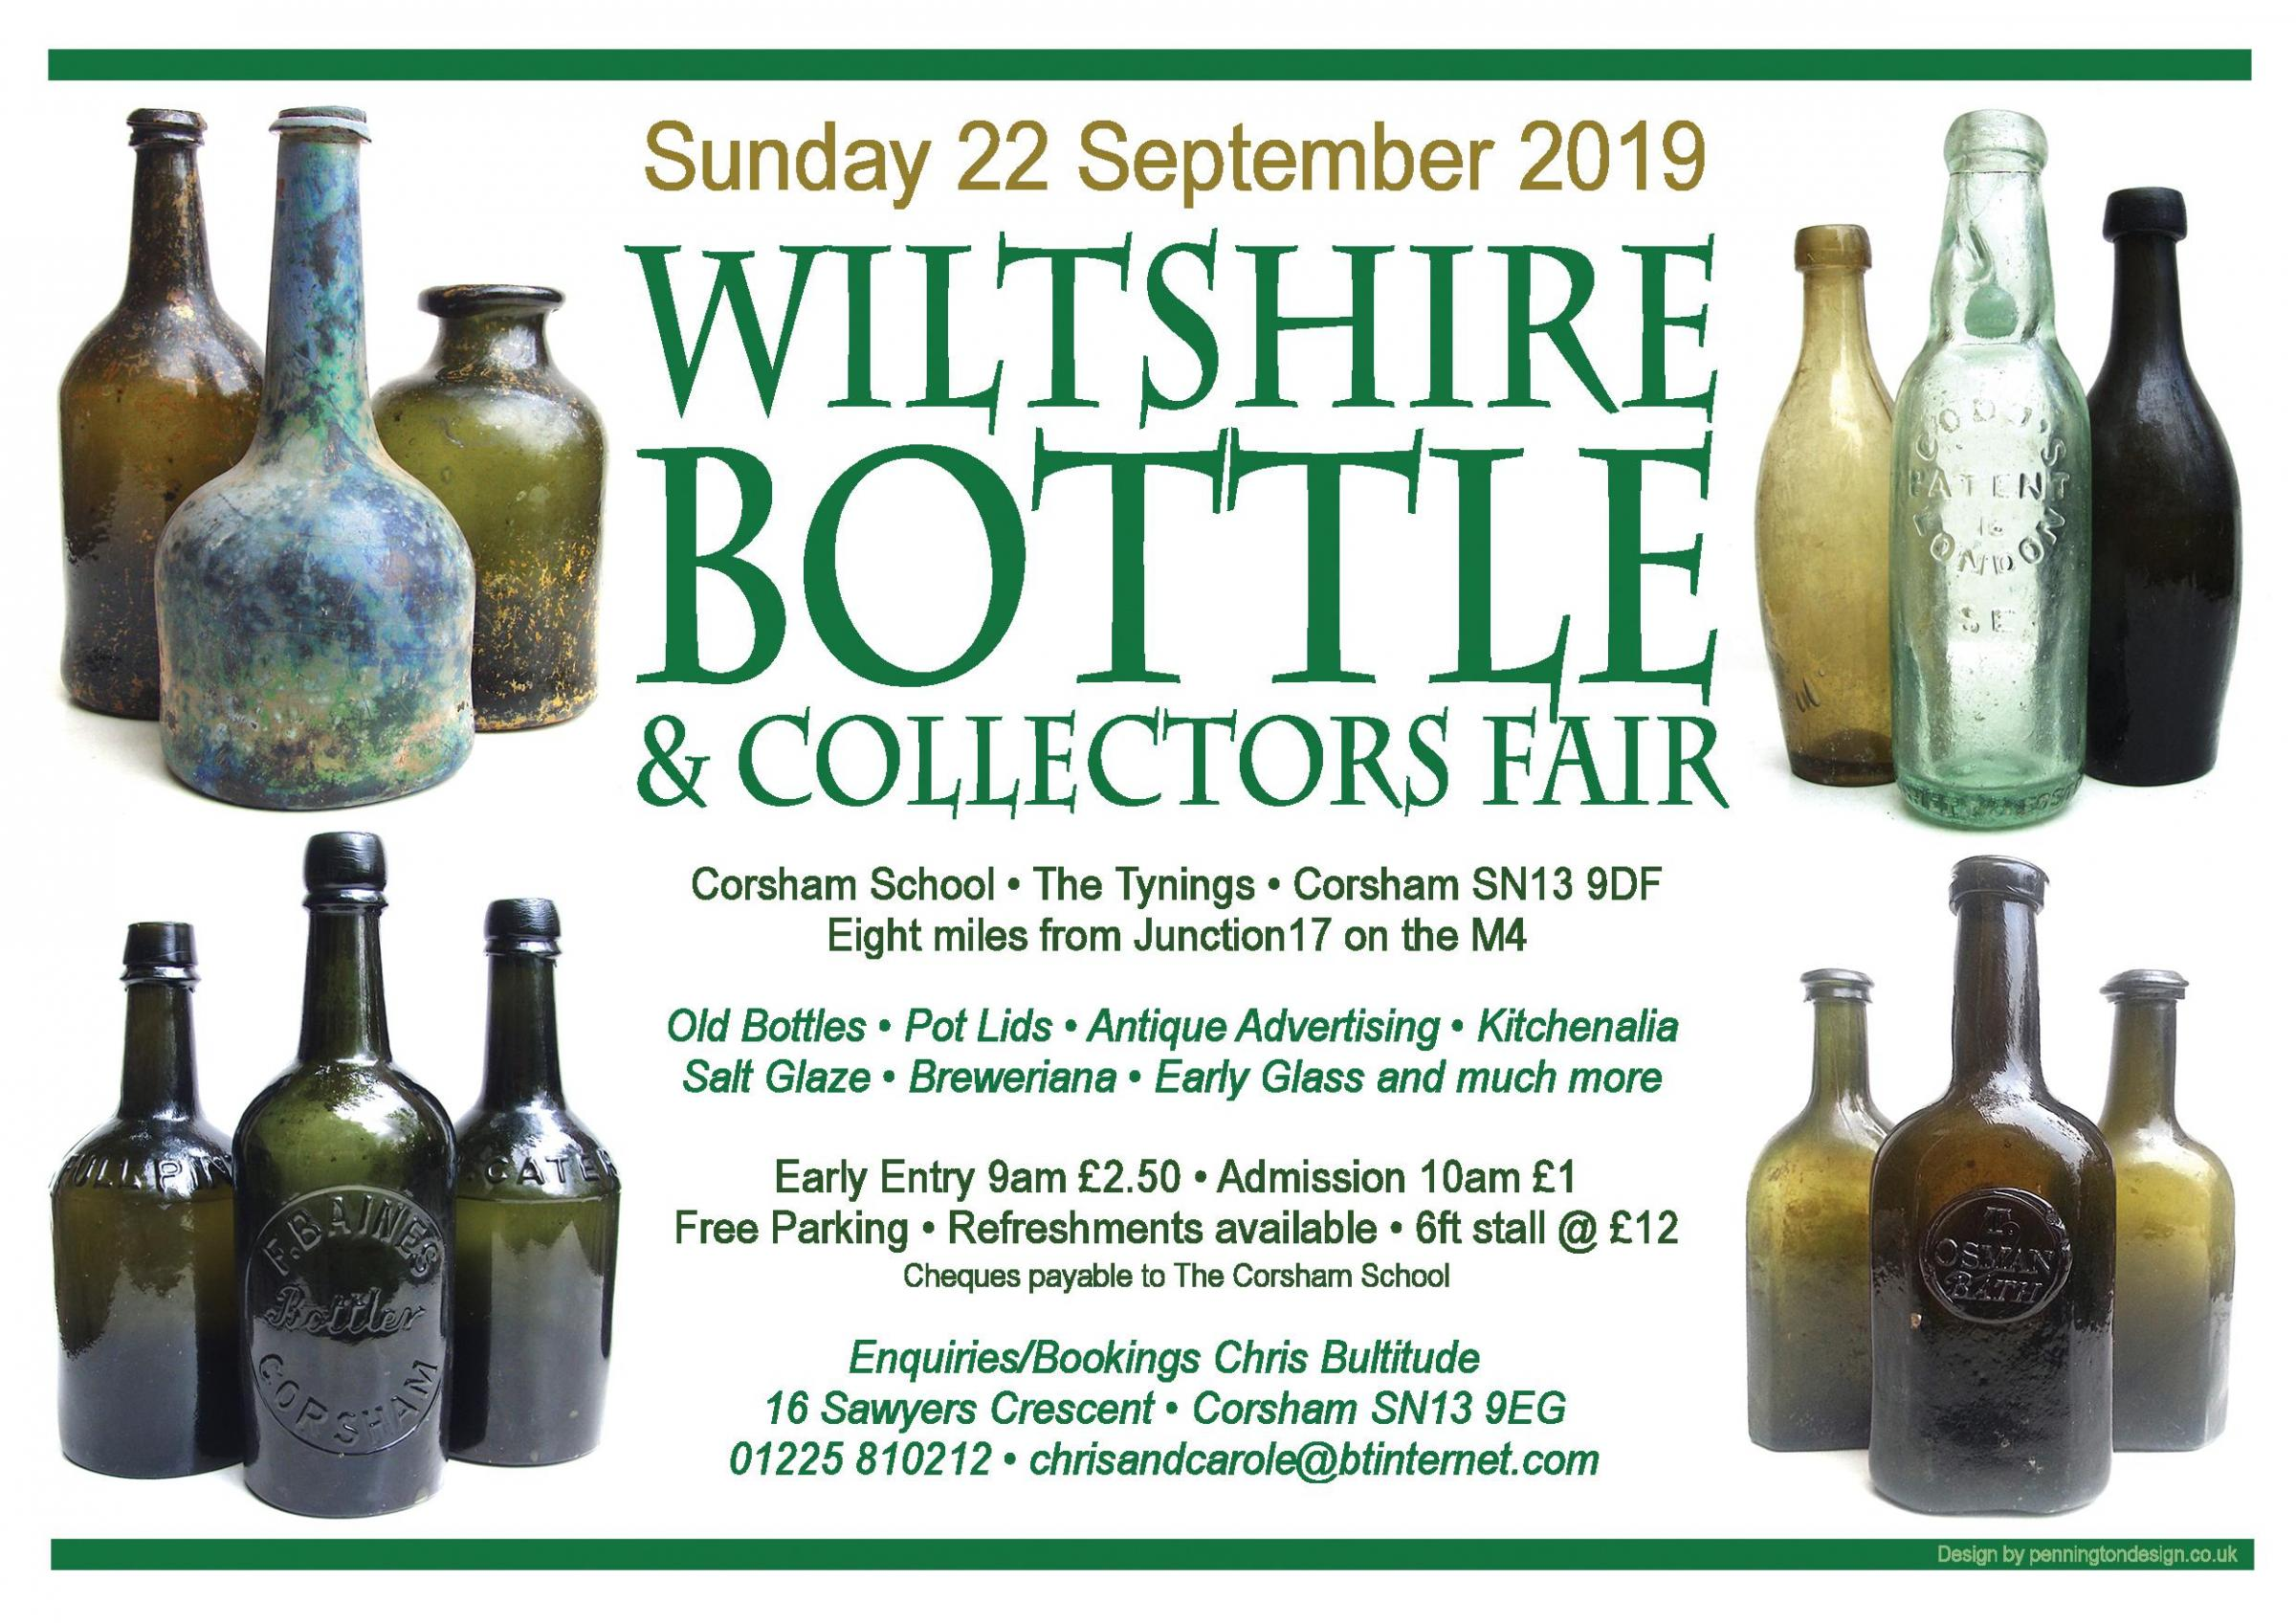 Wiltshire Bottle & Collectors Fair